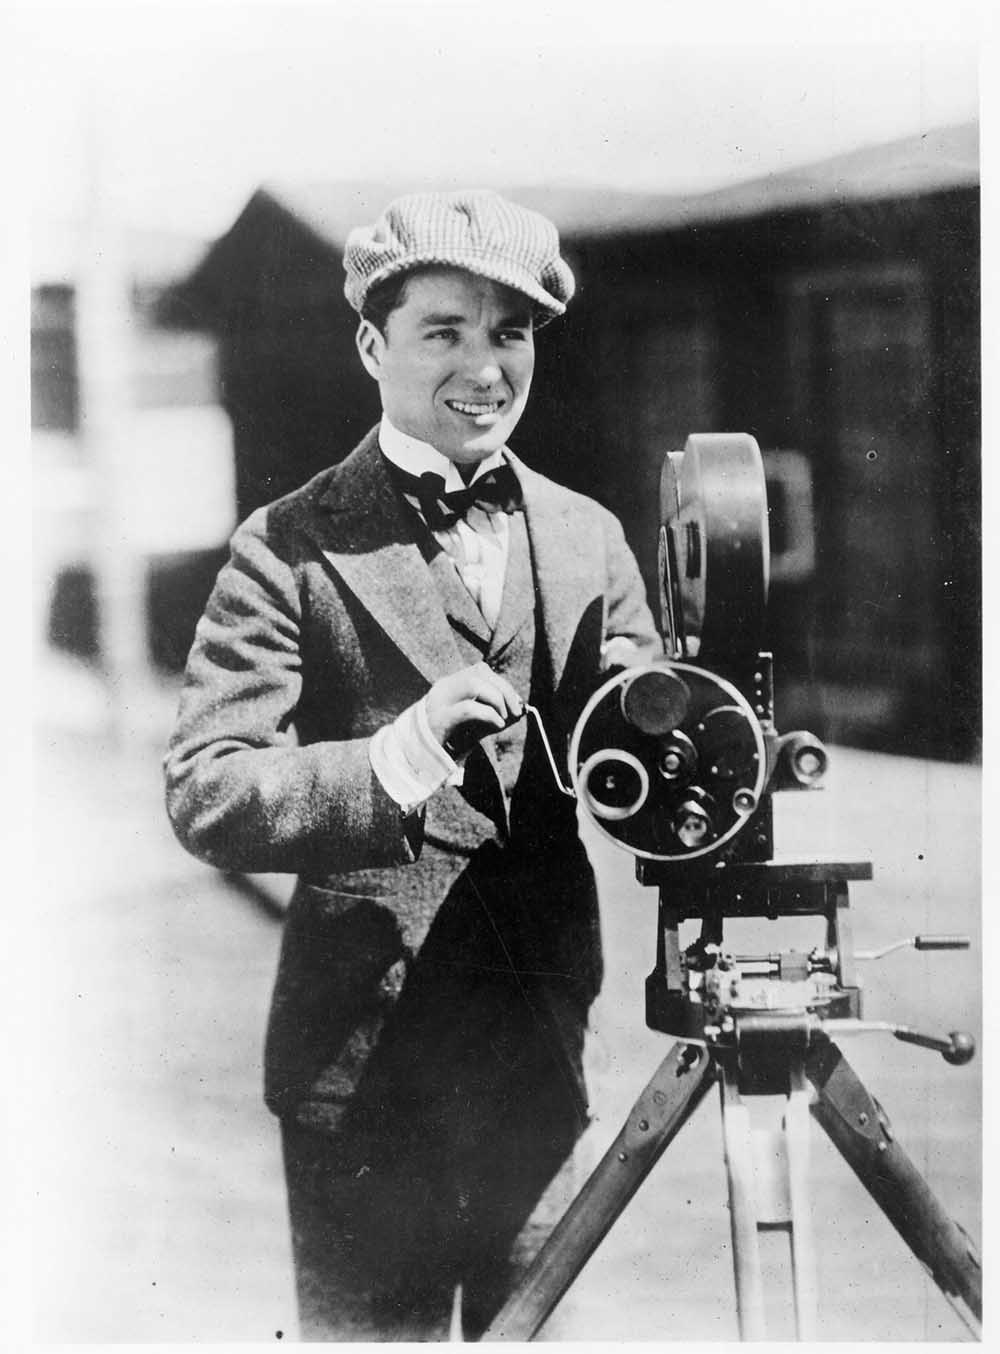 Charlie Chaplin mit Kamera, ca. 1915. Archives of Roy Export Company Establishment. Scan Cineteca di Bologna; © Bonhams/Splash News/Corbis